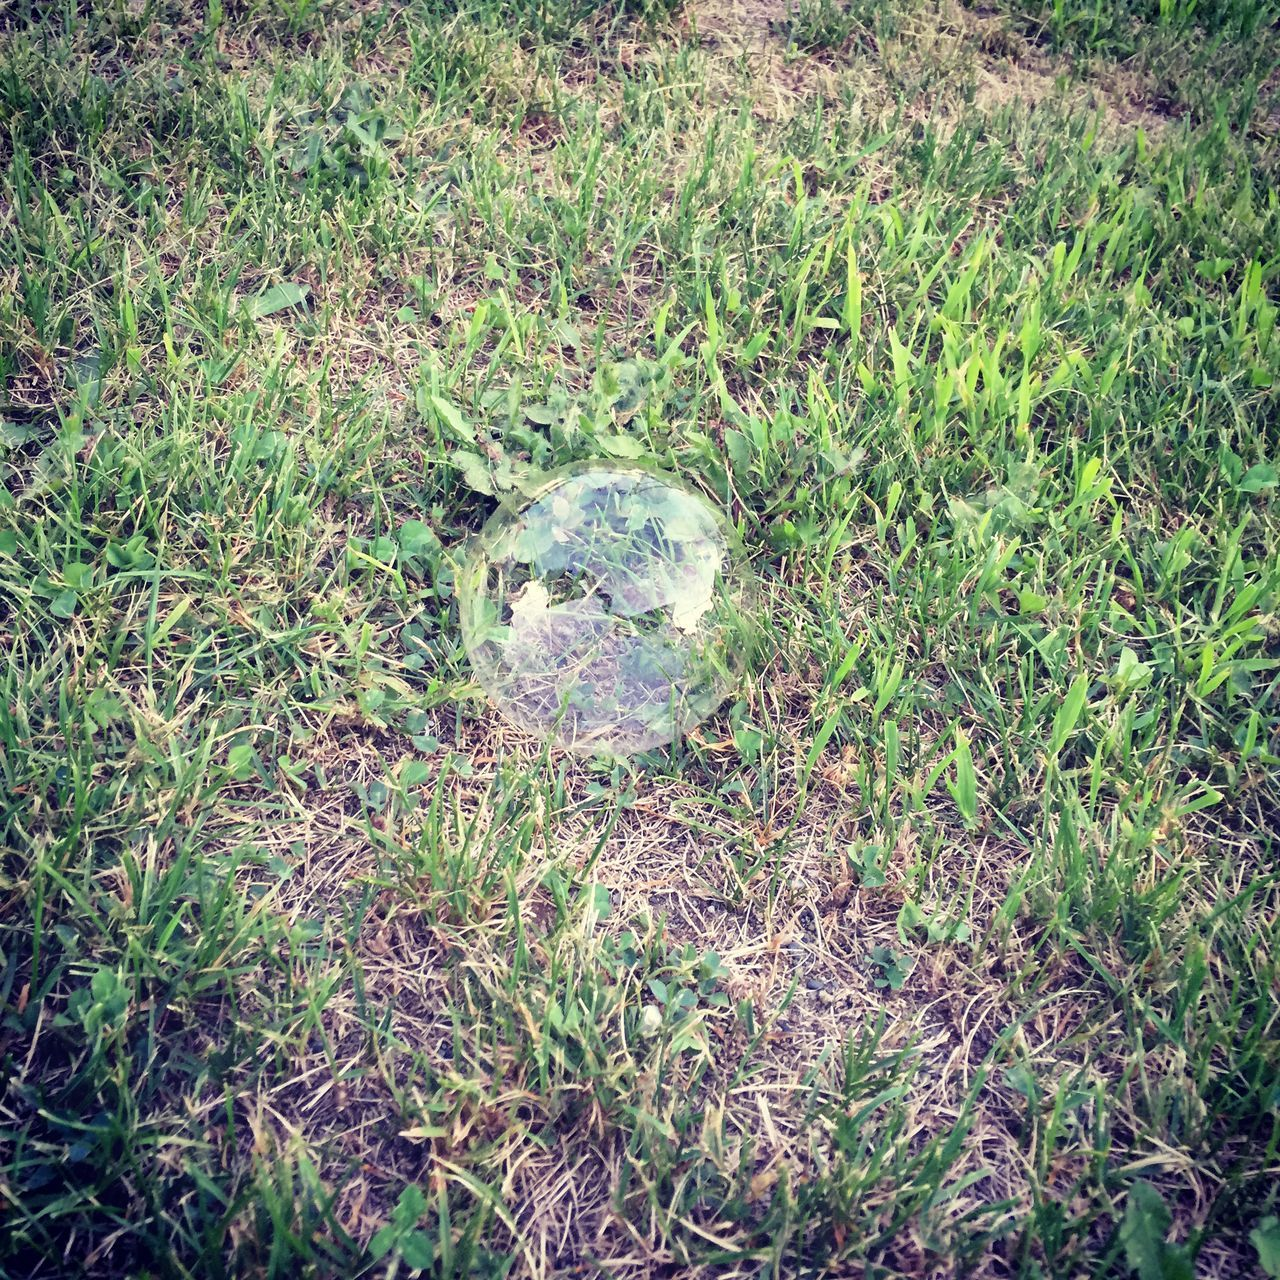 High Angle View Of Bubble On Grassy Field